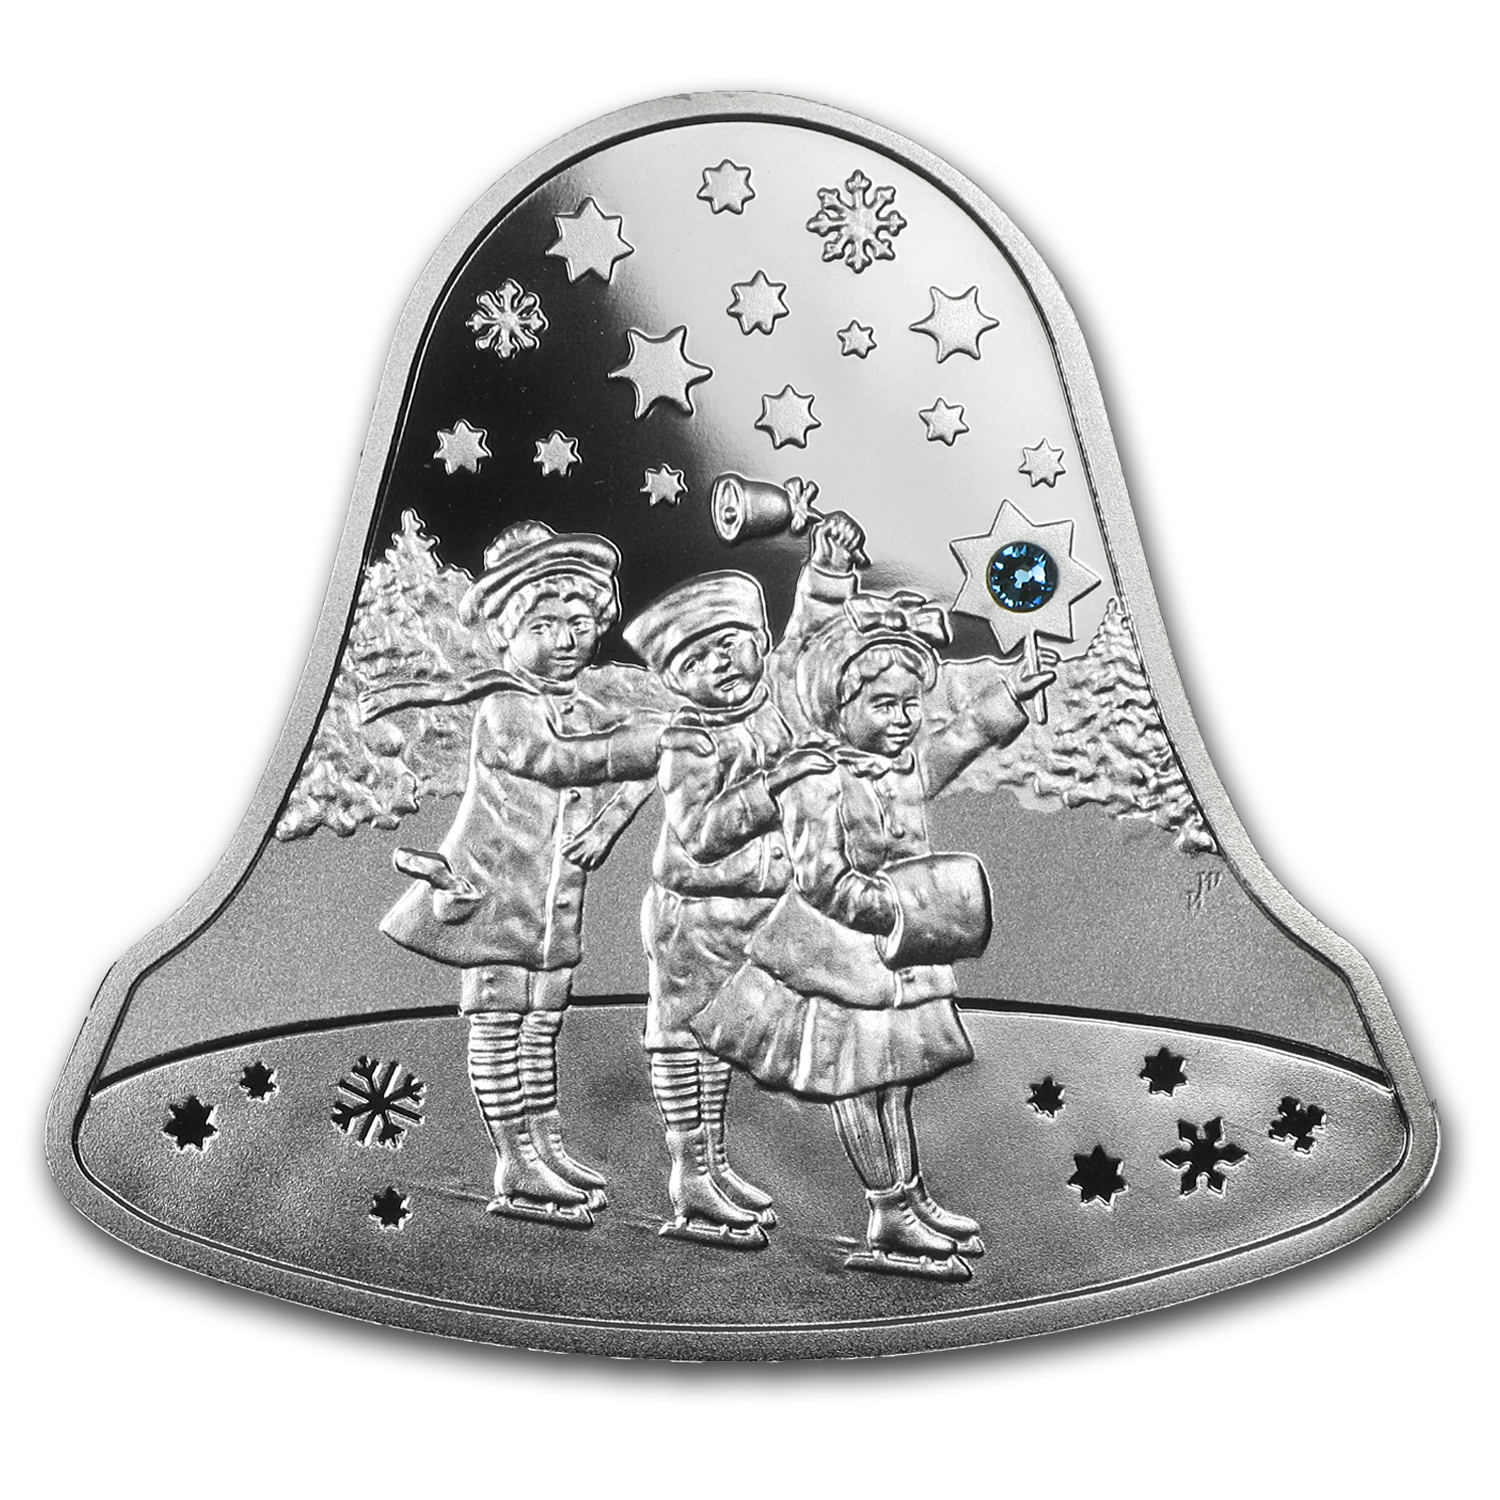 Niue 2012 Proof Silver $2 Christmas Bell with Swarovski Crystal